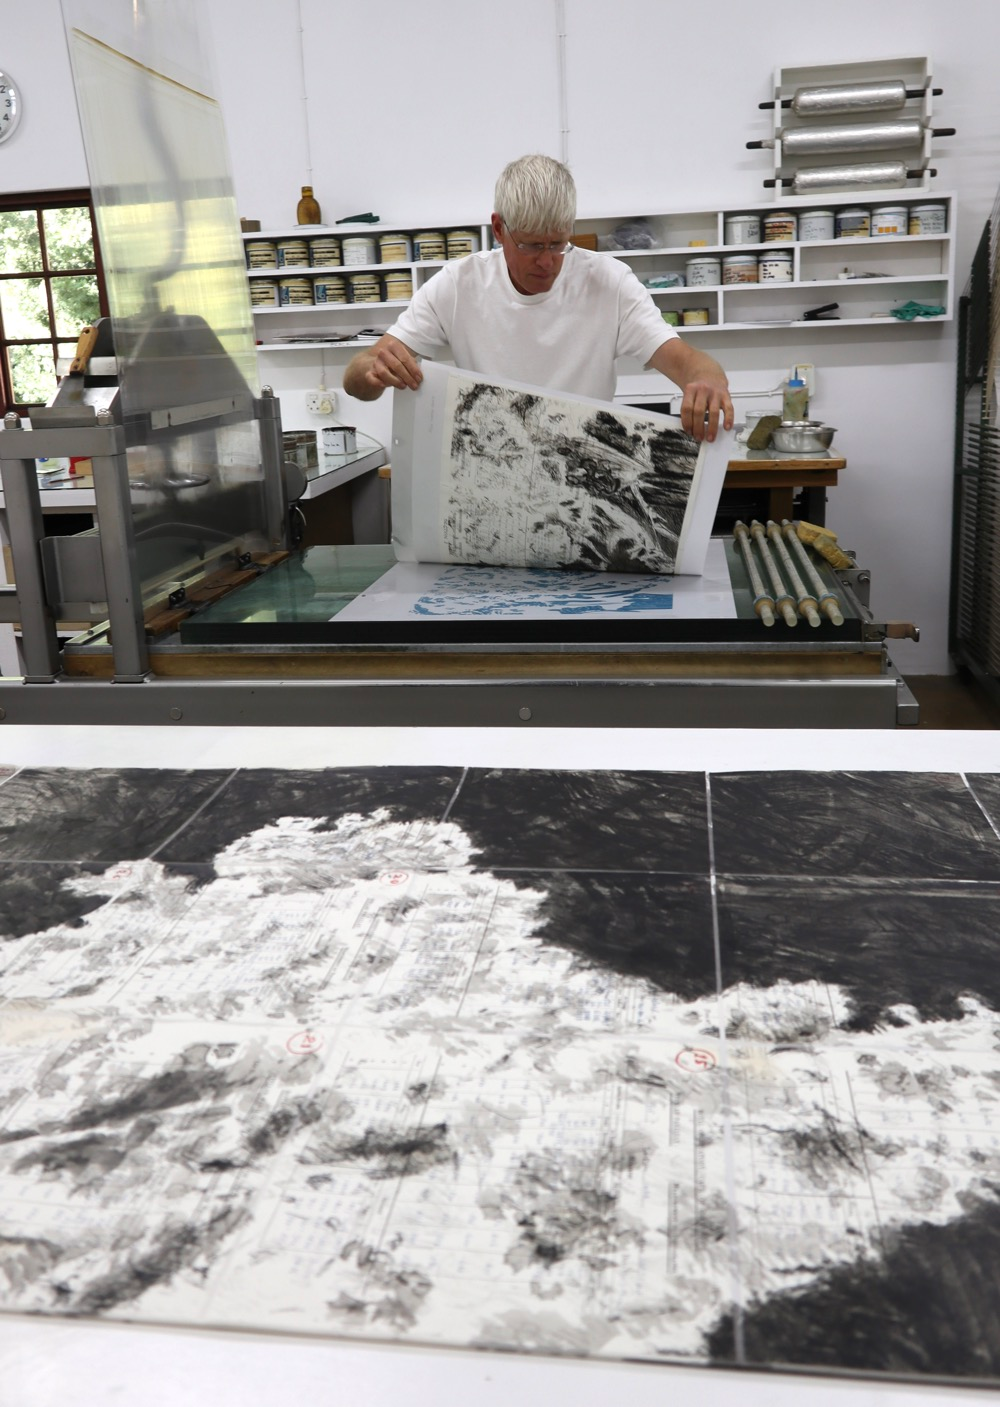 Mark Attwood hand printing a limited edition lithograph by William Kentridge on a lithography press at The Artists' Press.